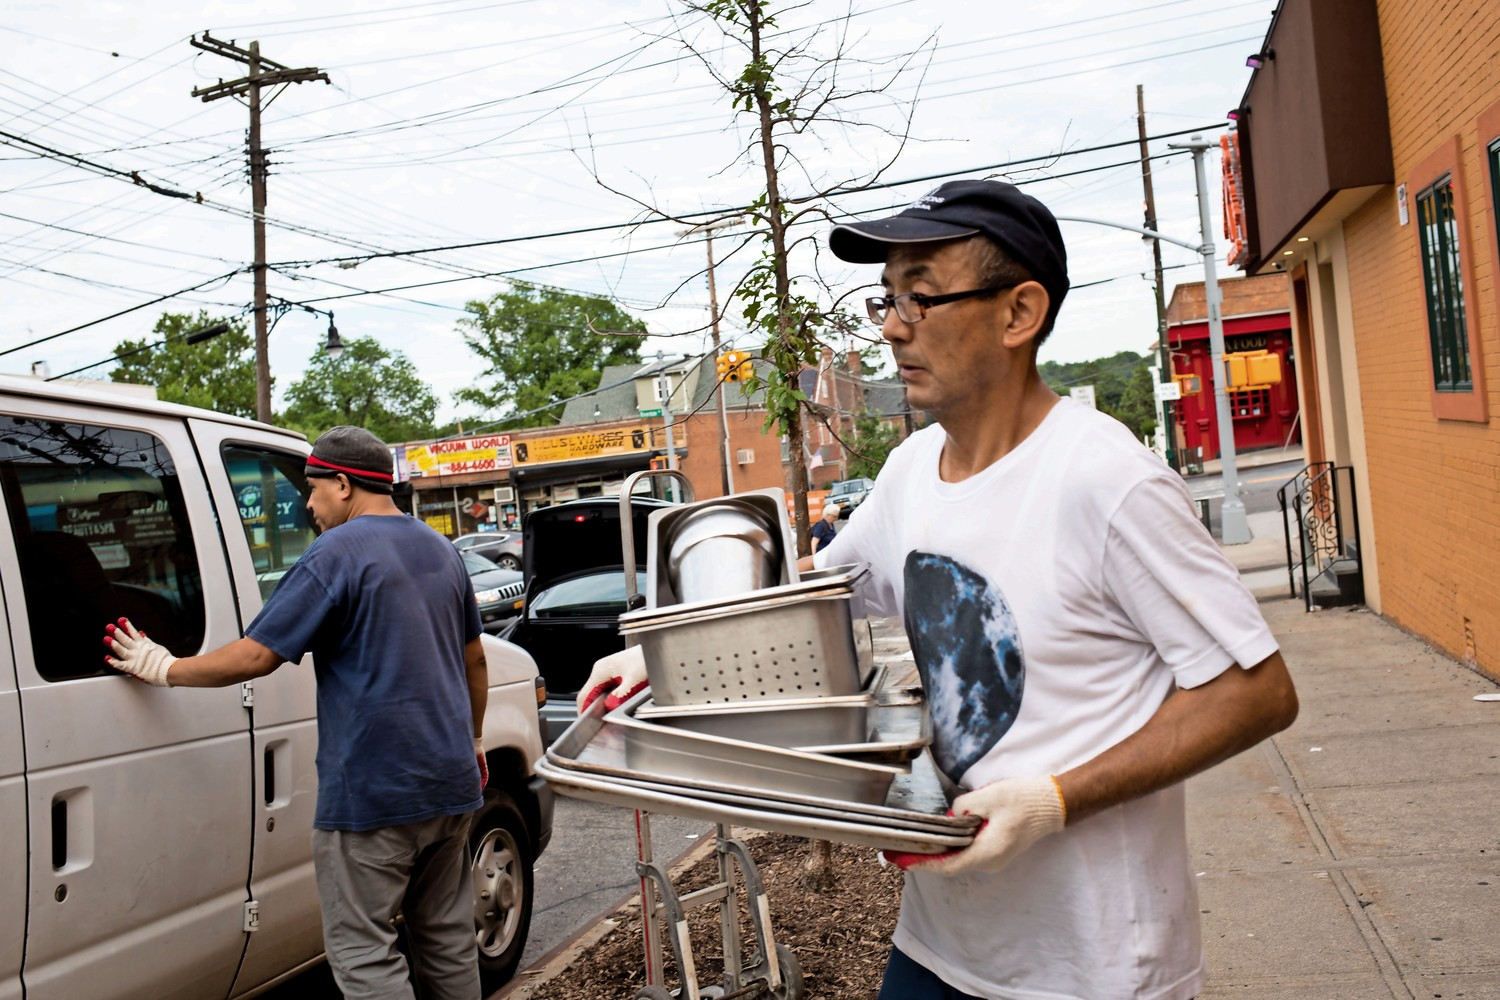 A man carries various kitchen appliances out of K Grill House on July 31. The North Riverdale eatery has closed down for unspecified reasons.